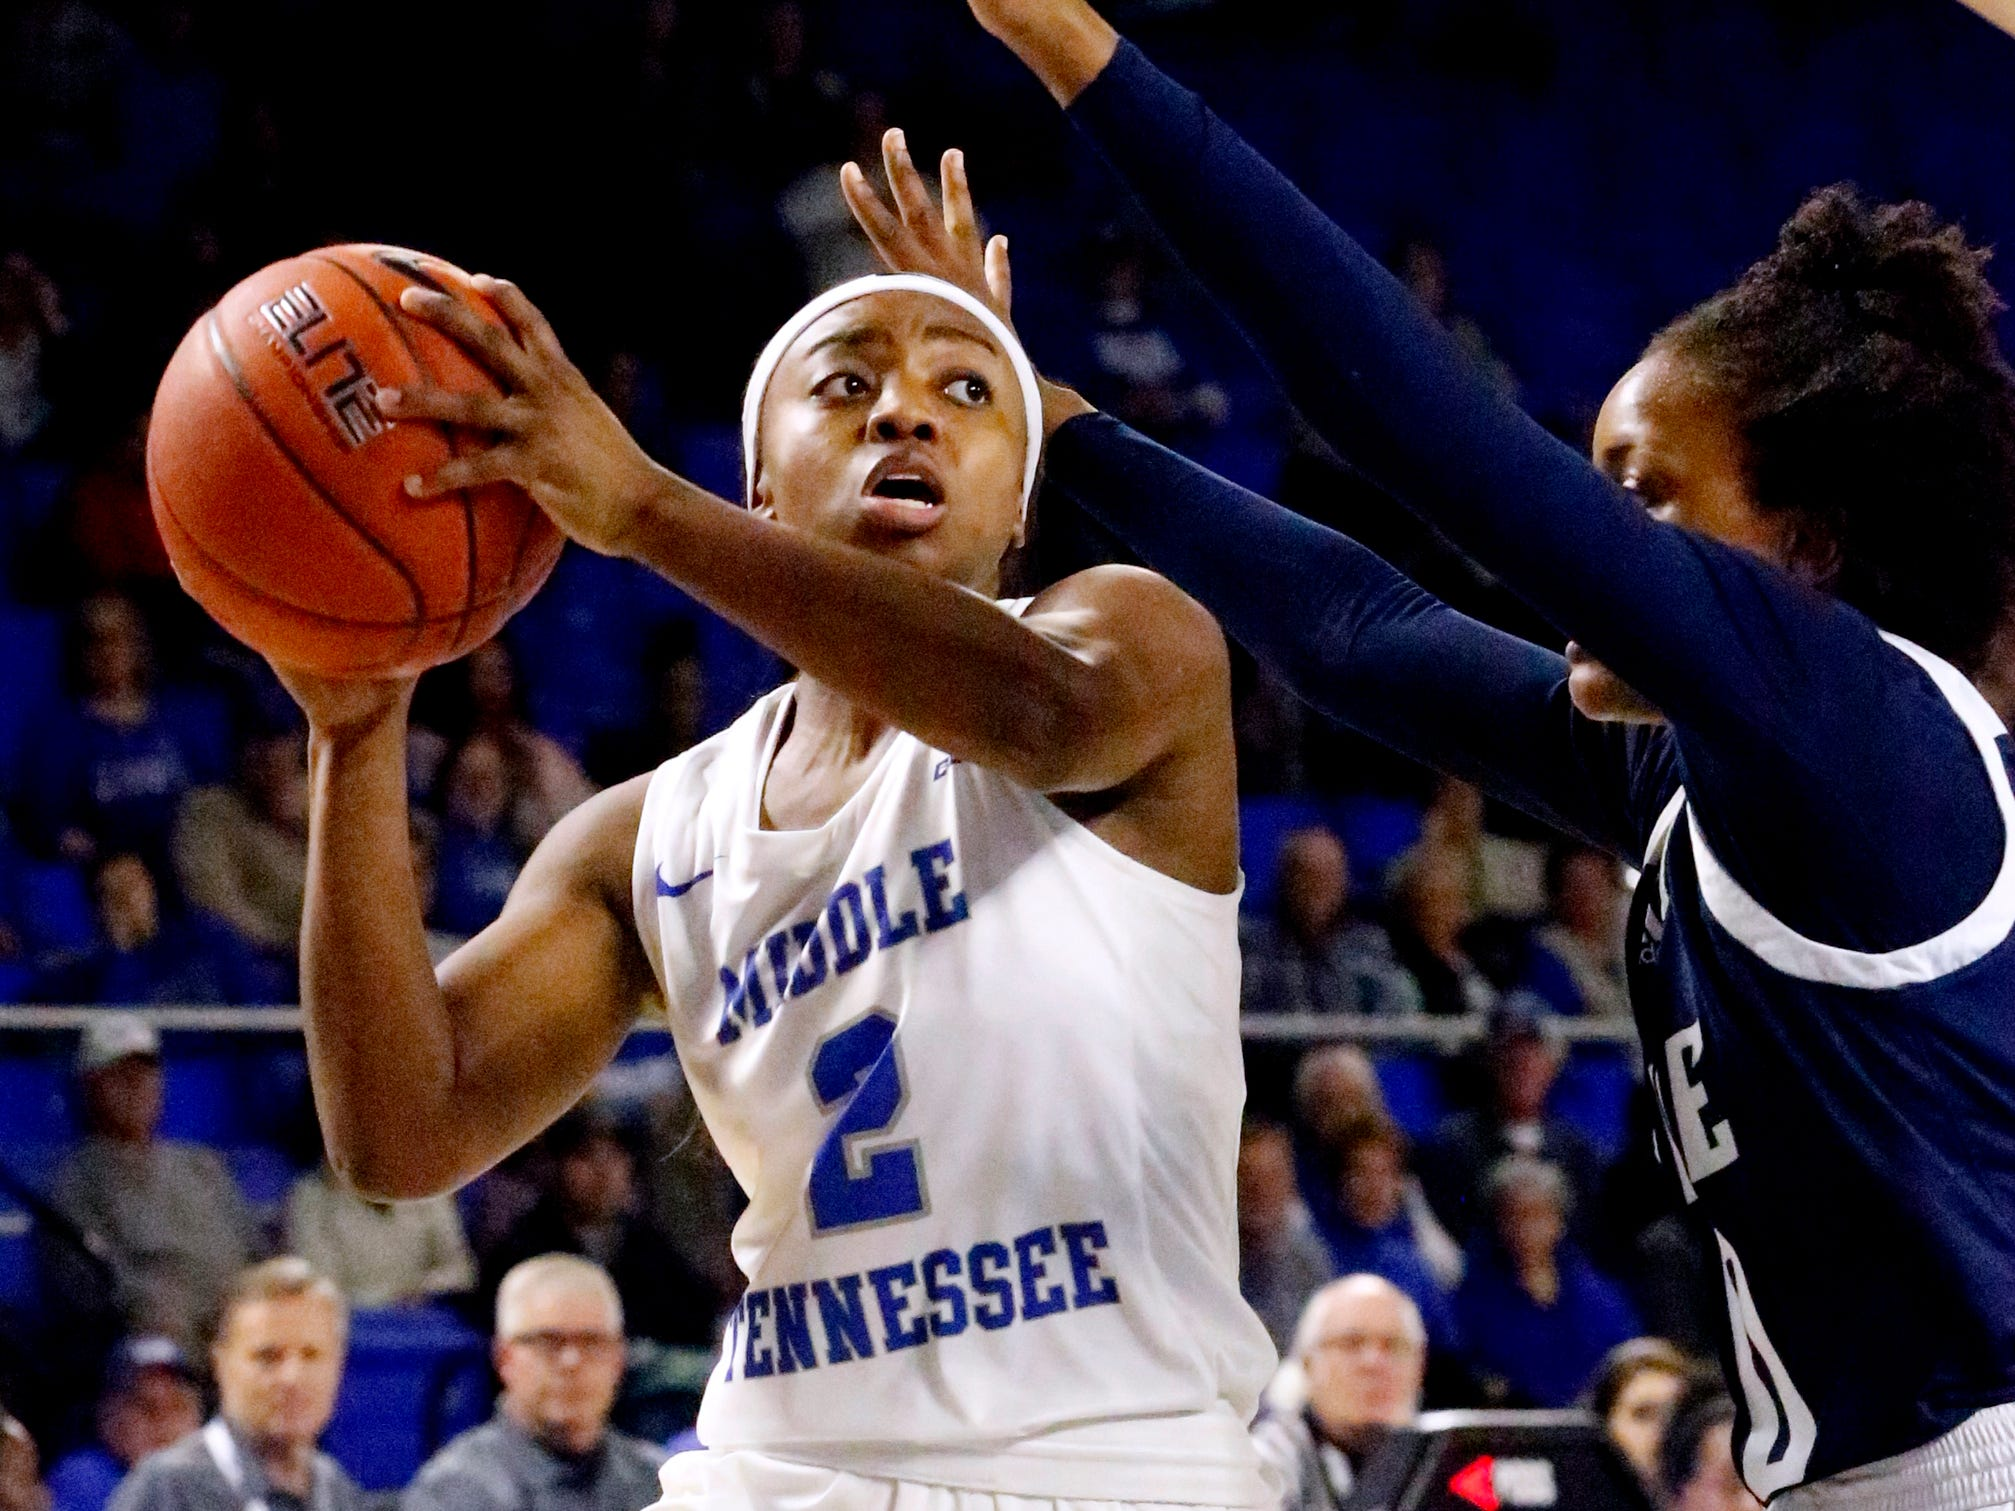 MTSU's guard Taylor Sutton (2) passes the ball as Rice's guard Jasmine Smith (10) guards her on Thursday Jan. 24, 2019.